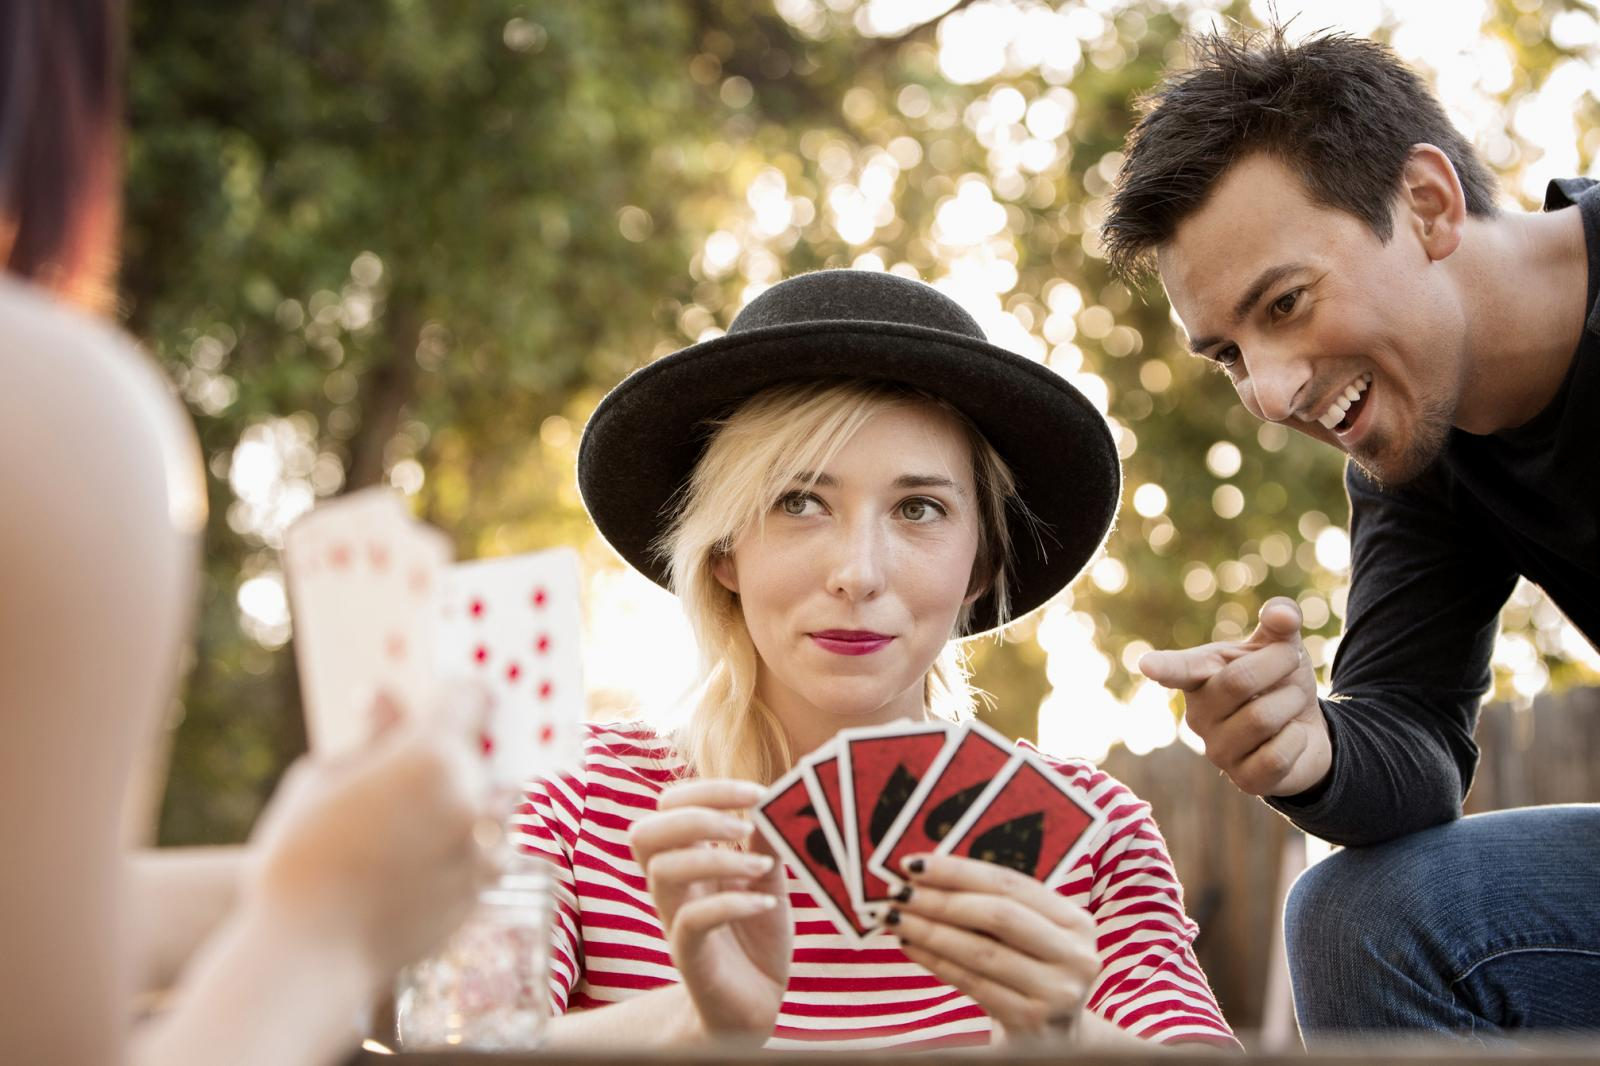 Friends playing card game in the park